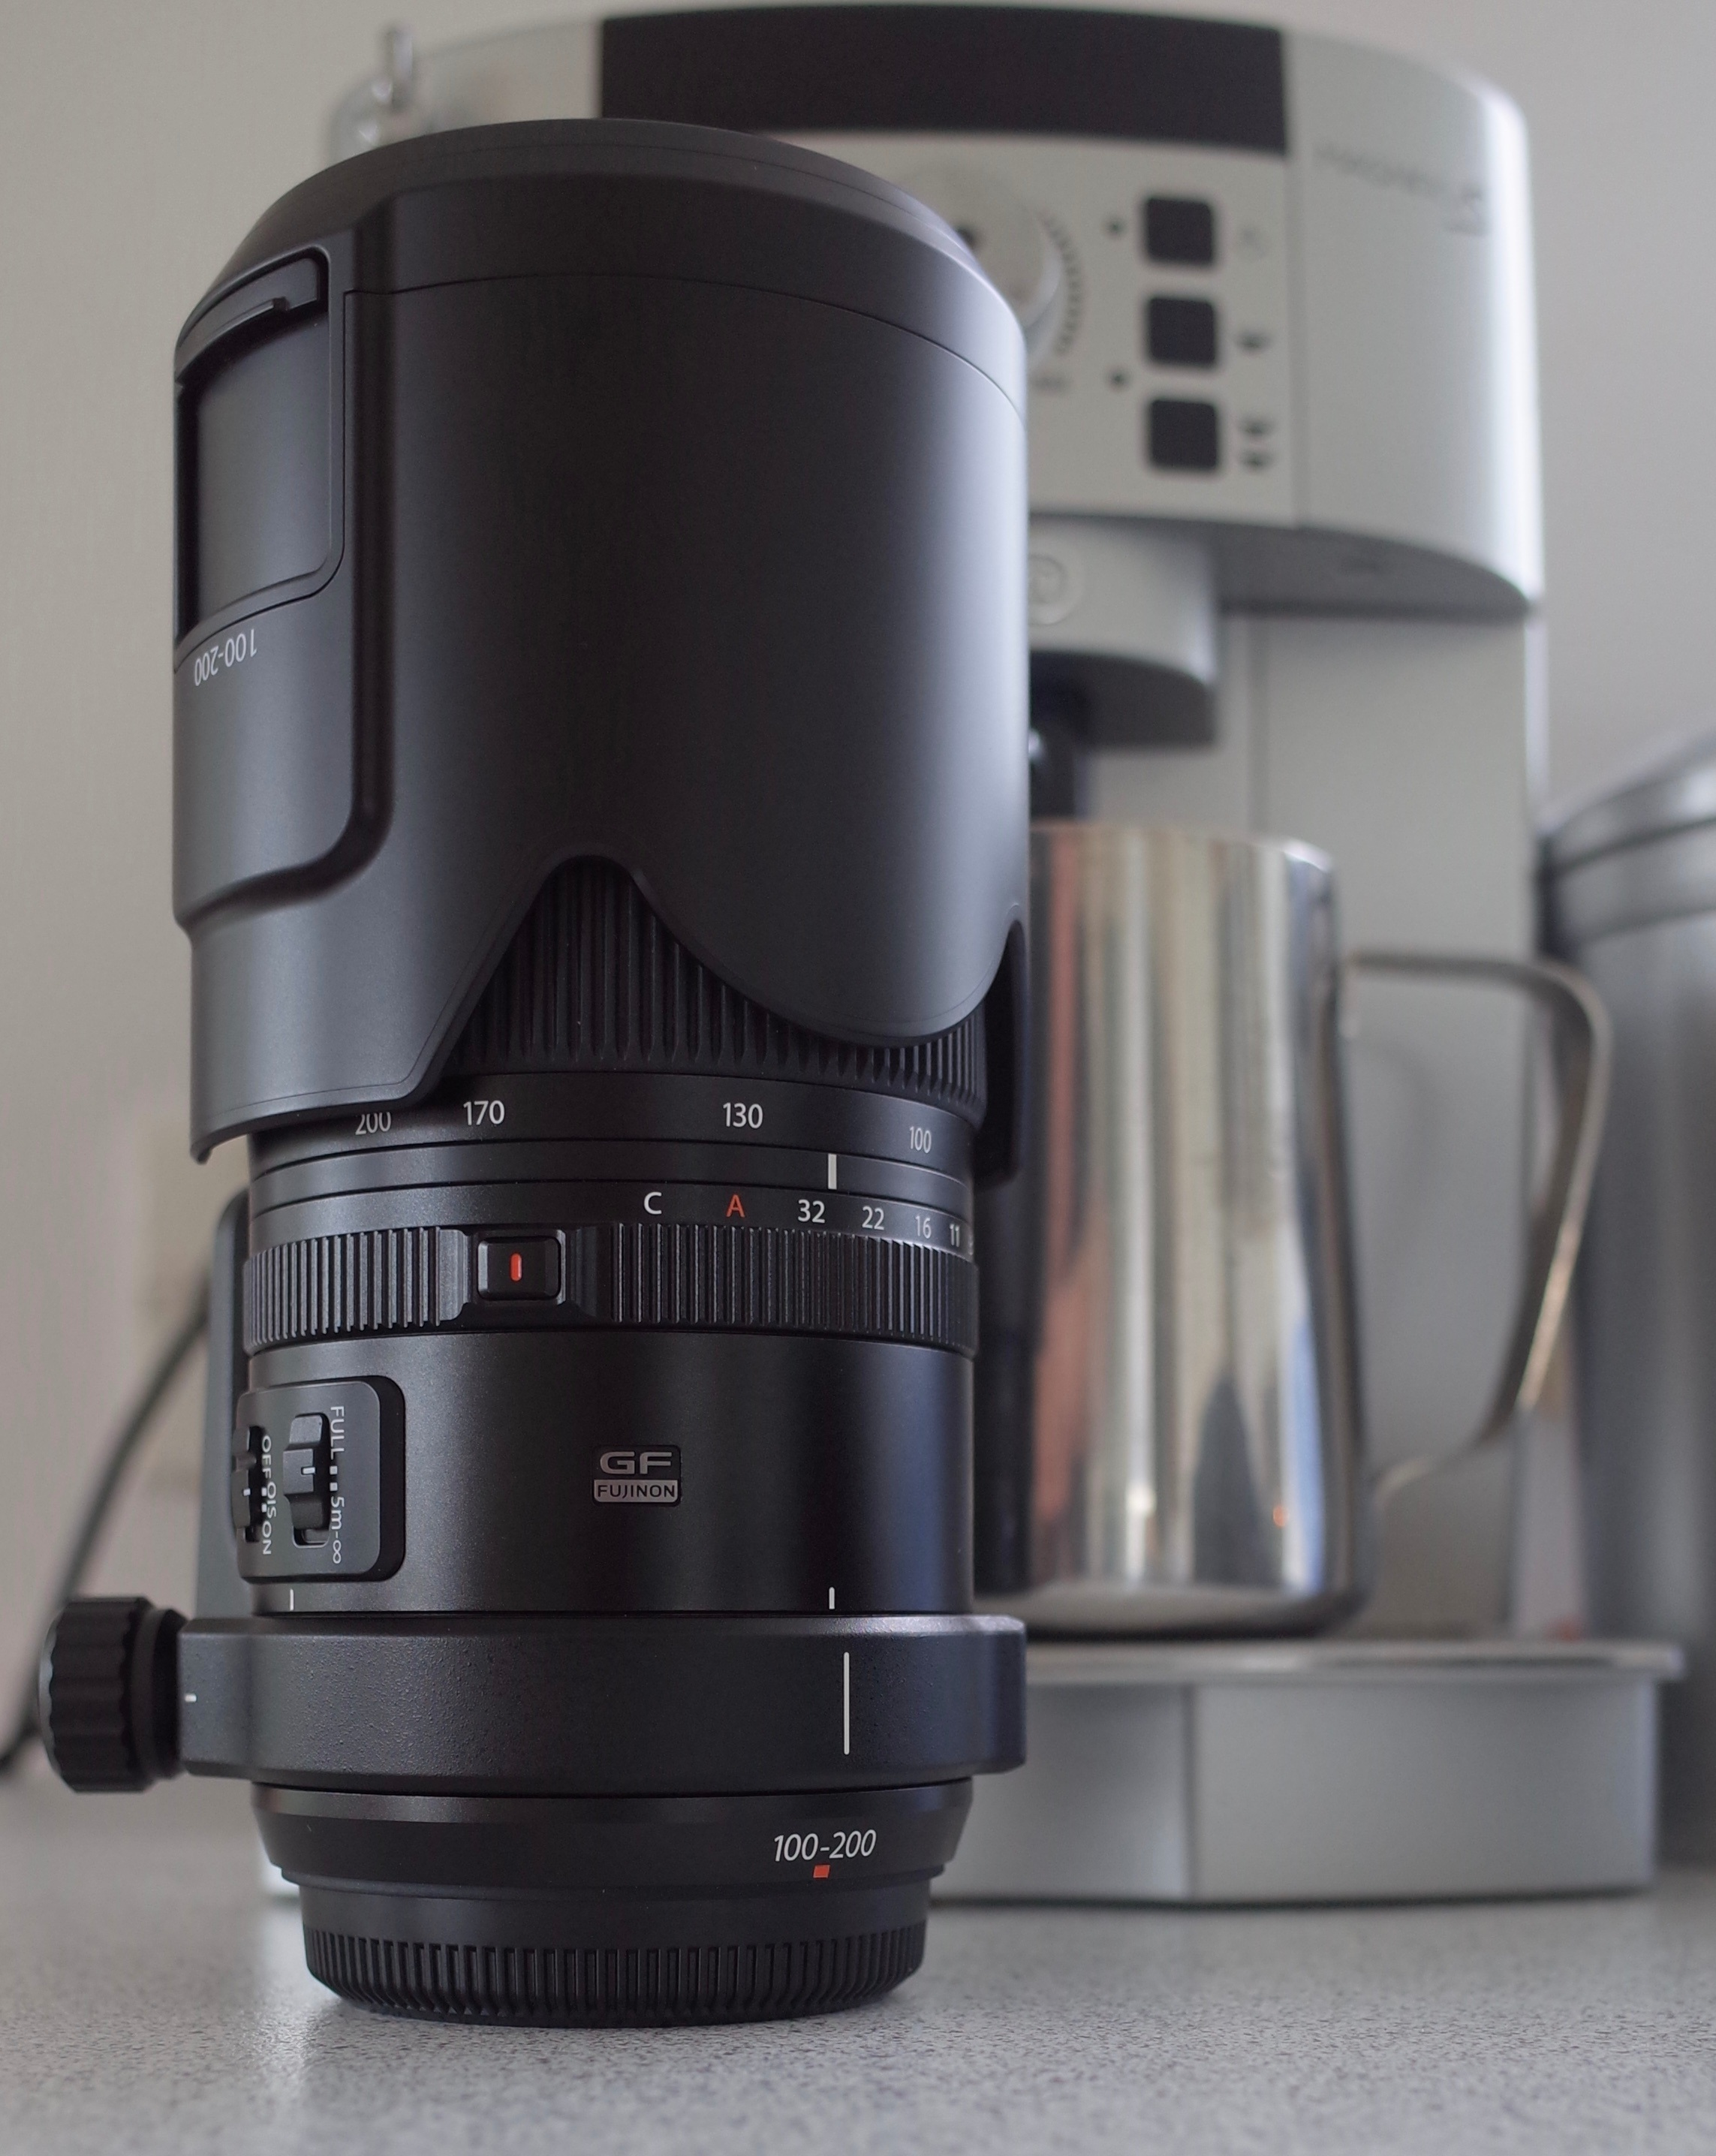 Notice the sliding door on the lens hood, this is if you have a polarizing filter attached and need to adjust.